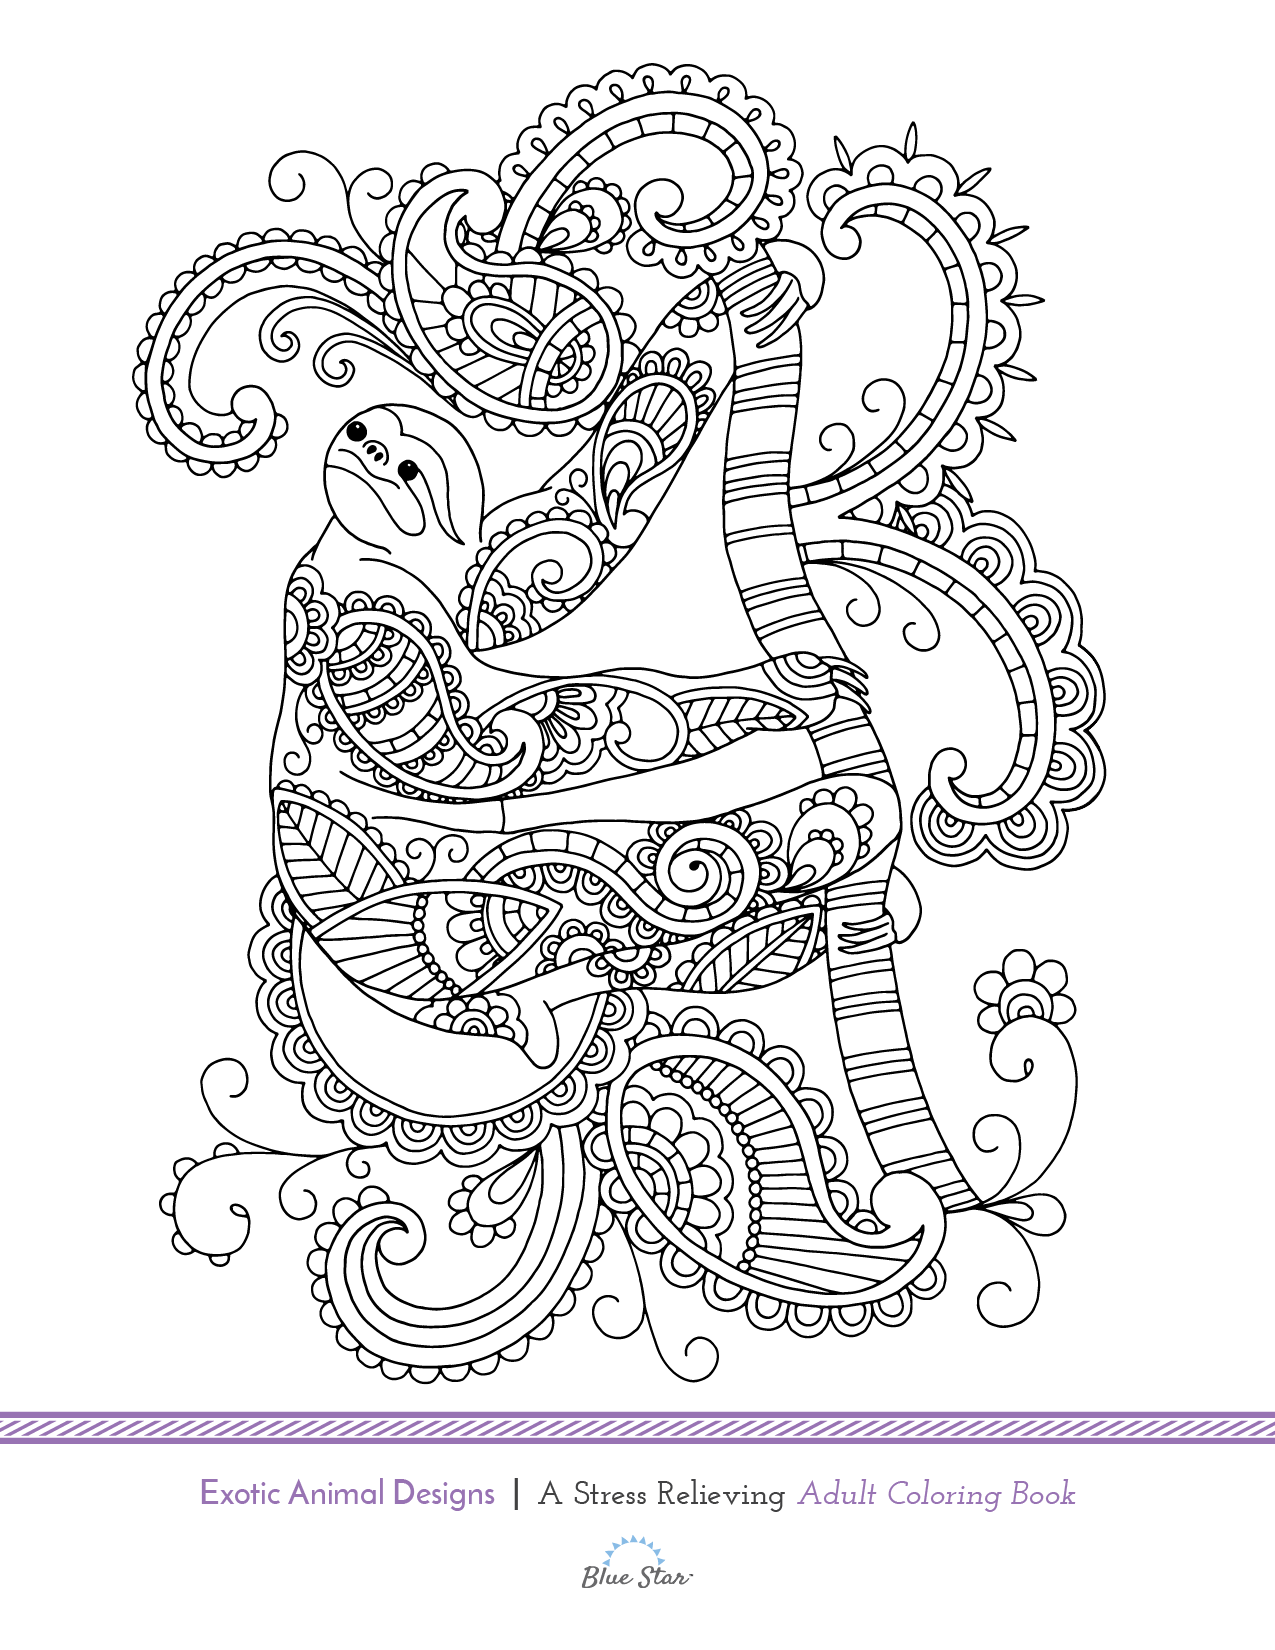 Another free adult coloring book page from Blue Star